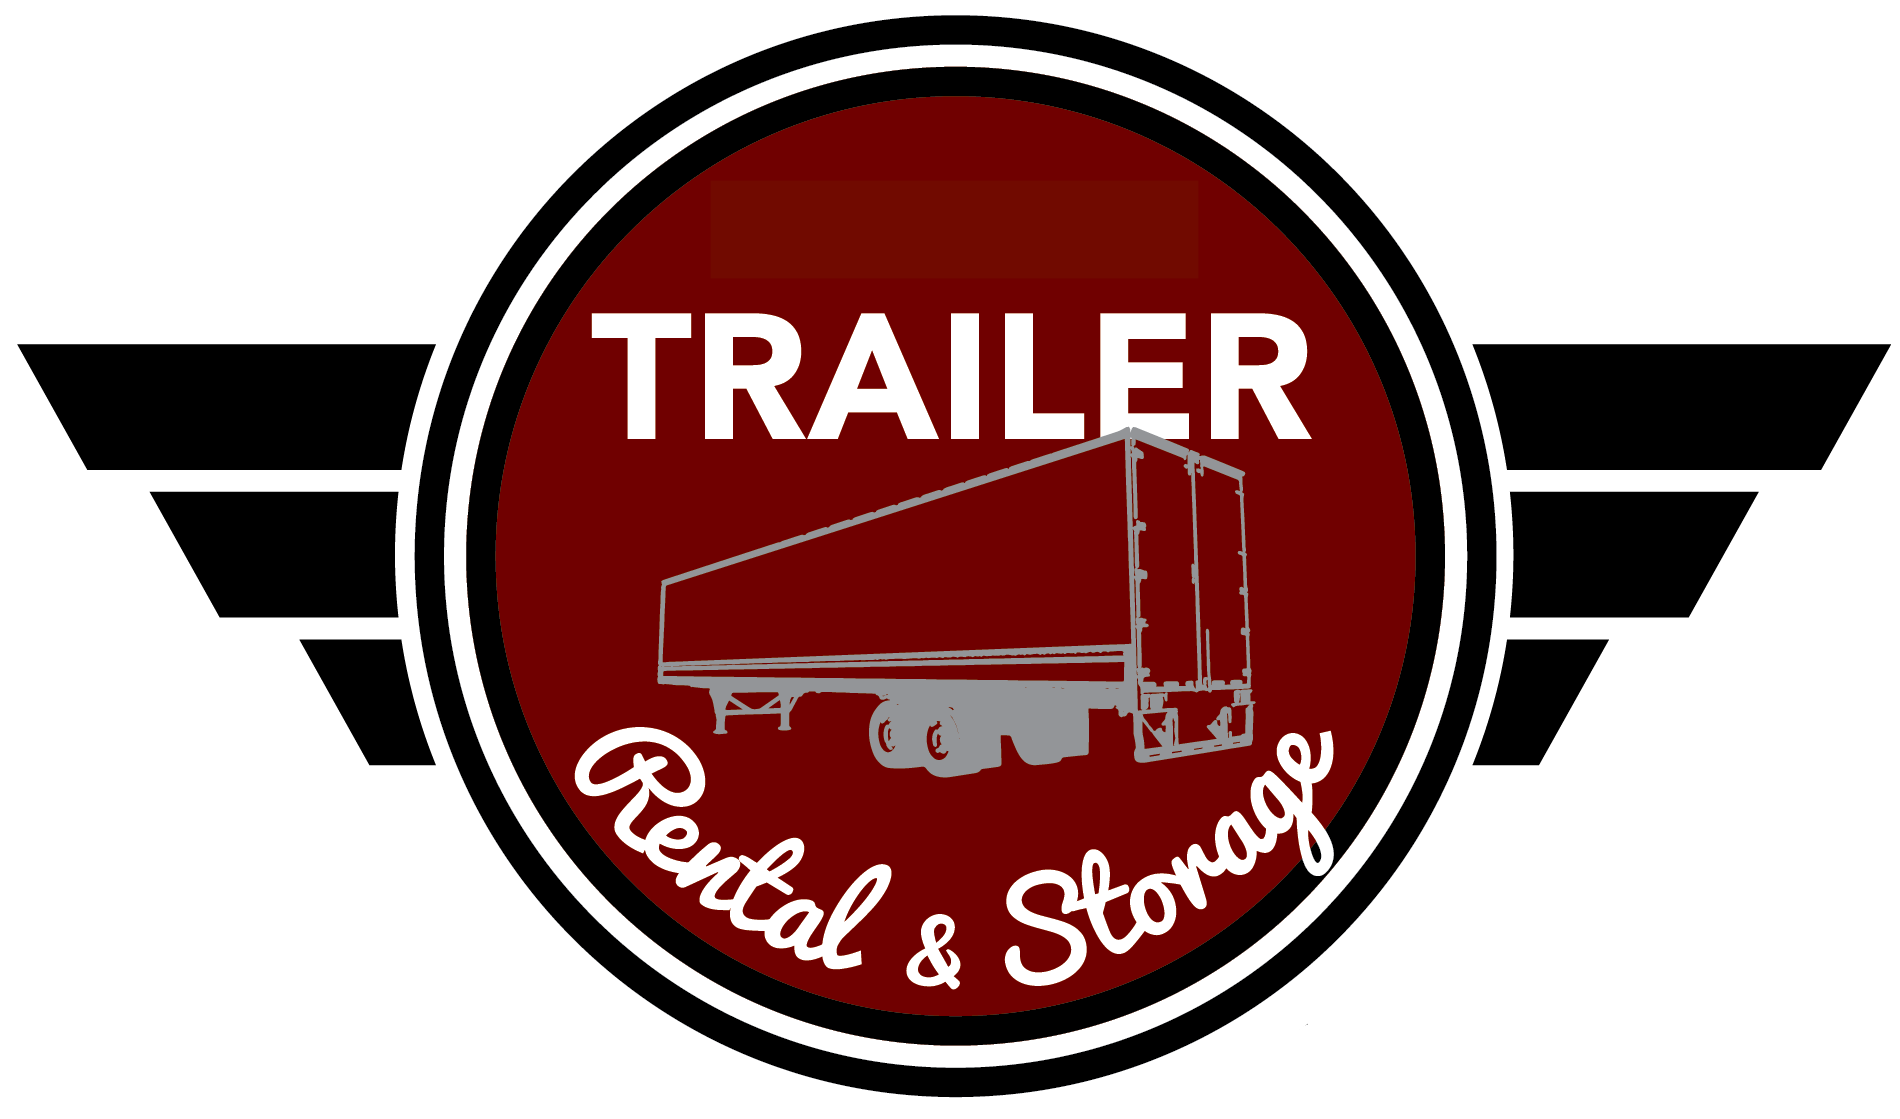 Trailer Rental & Storage Logo